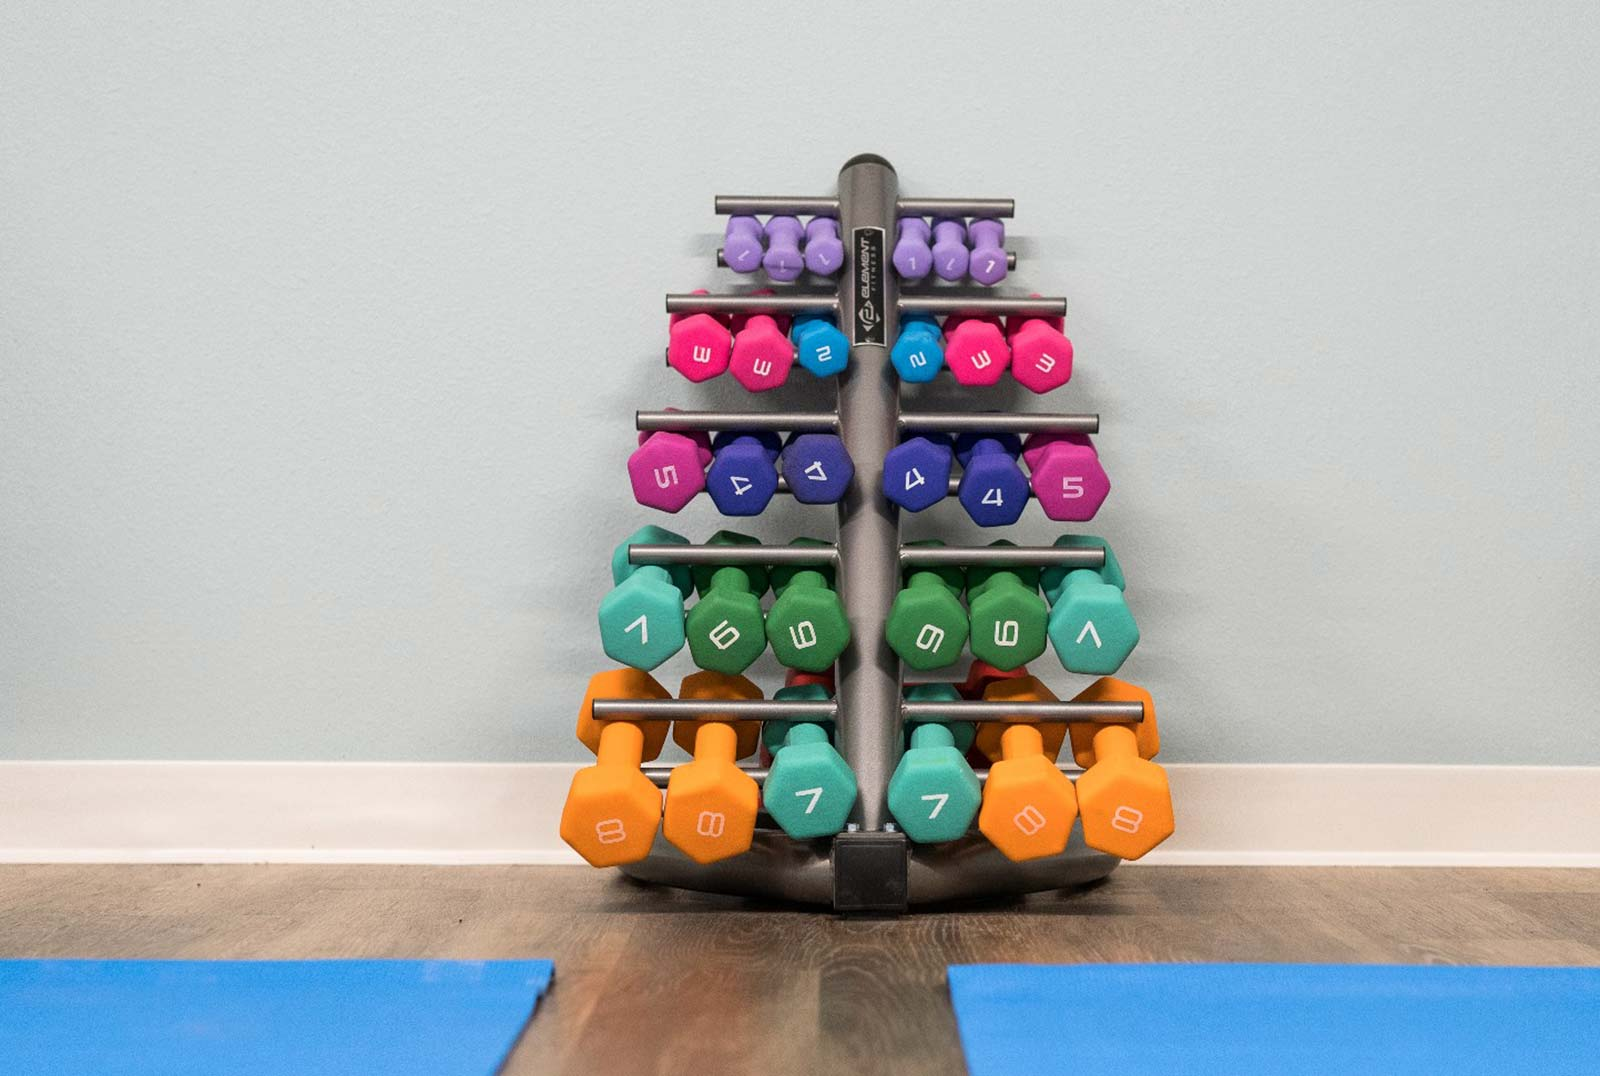 Colorful Vinyl Dumbbells Stacked In A Rack With Blue Yoga Mats Visible On Floor Nearby